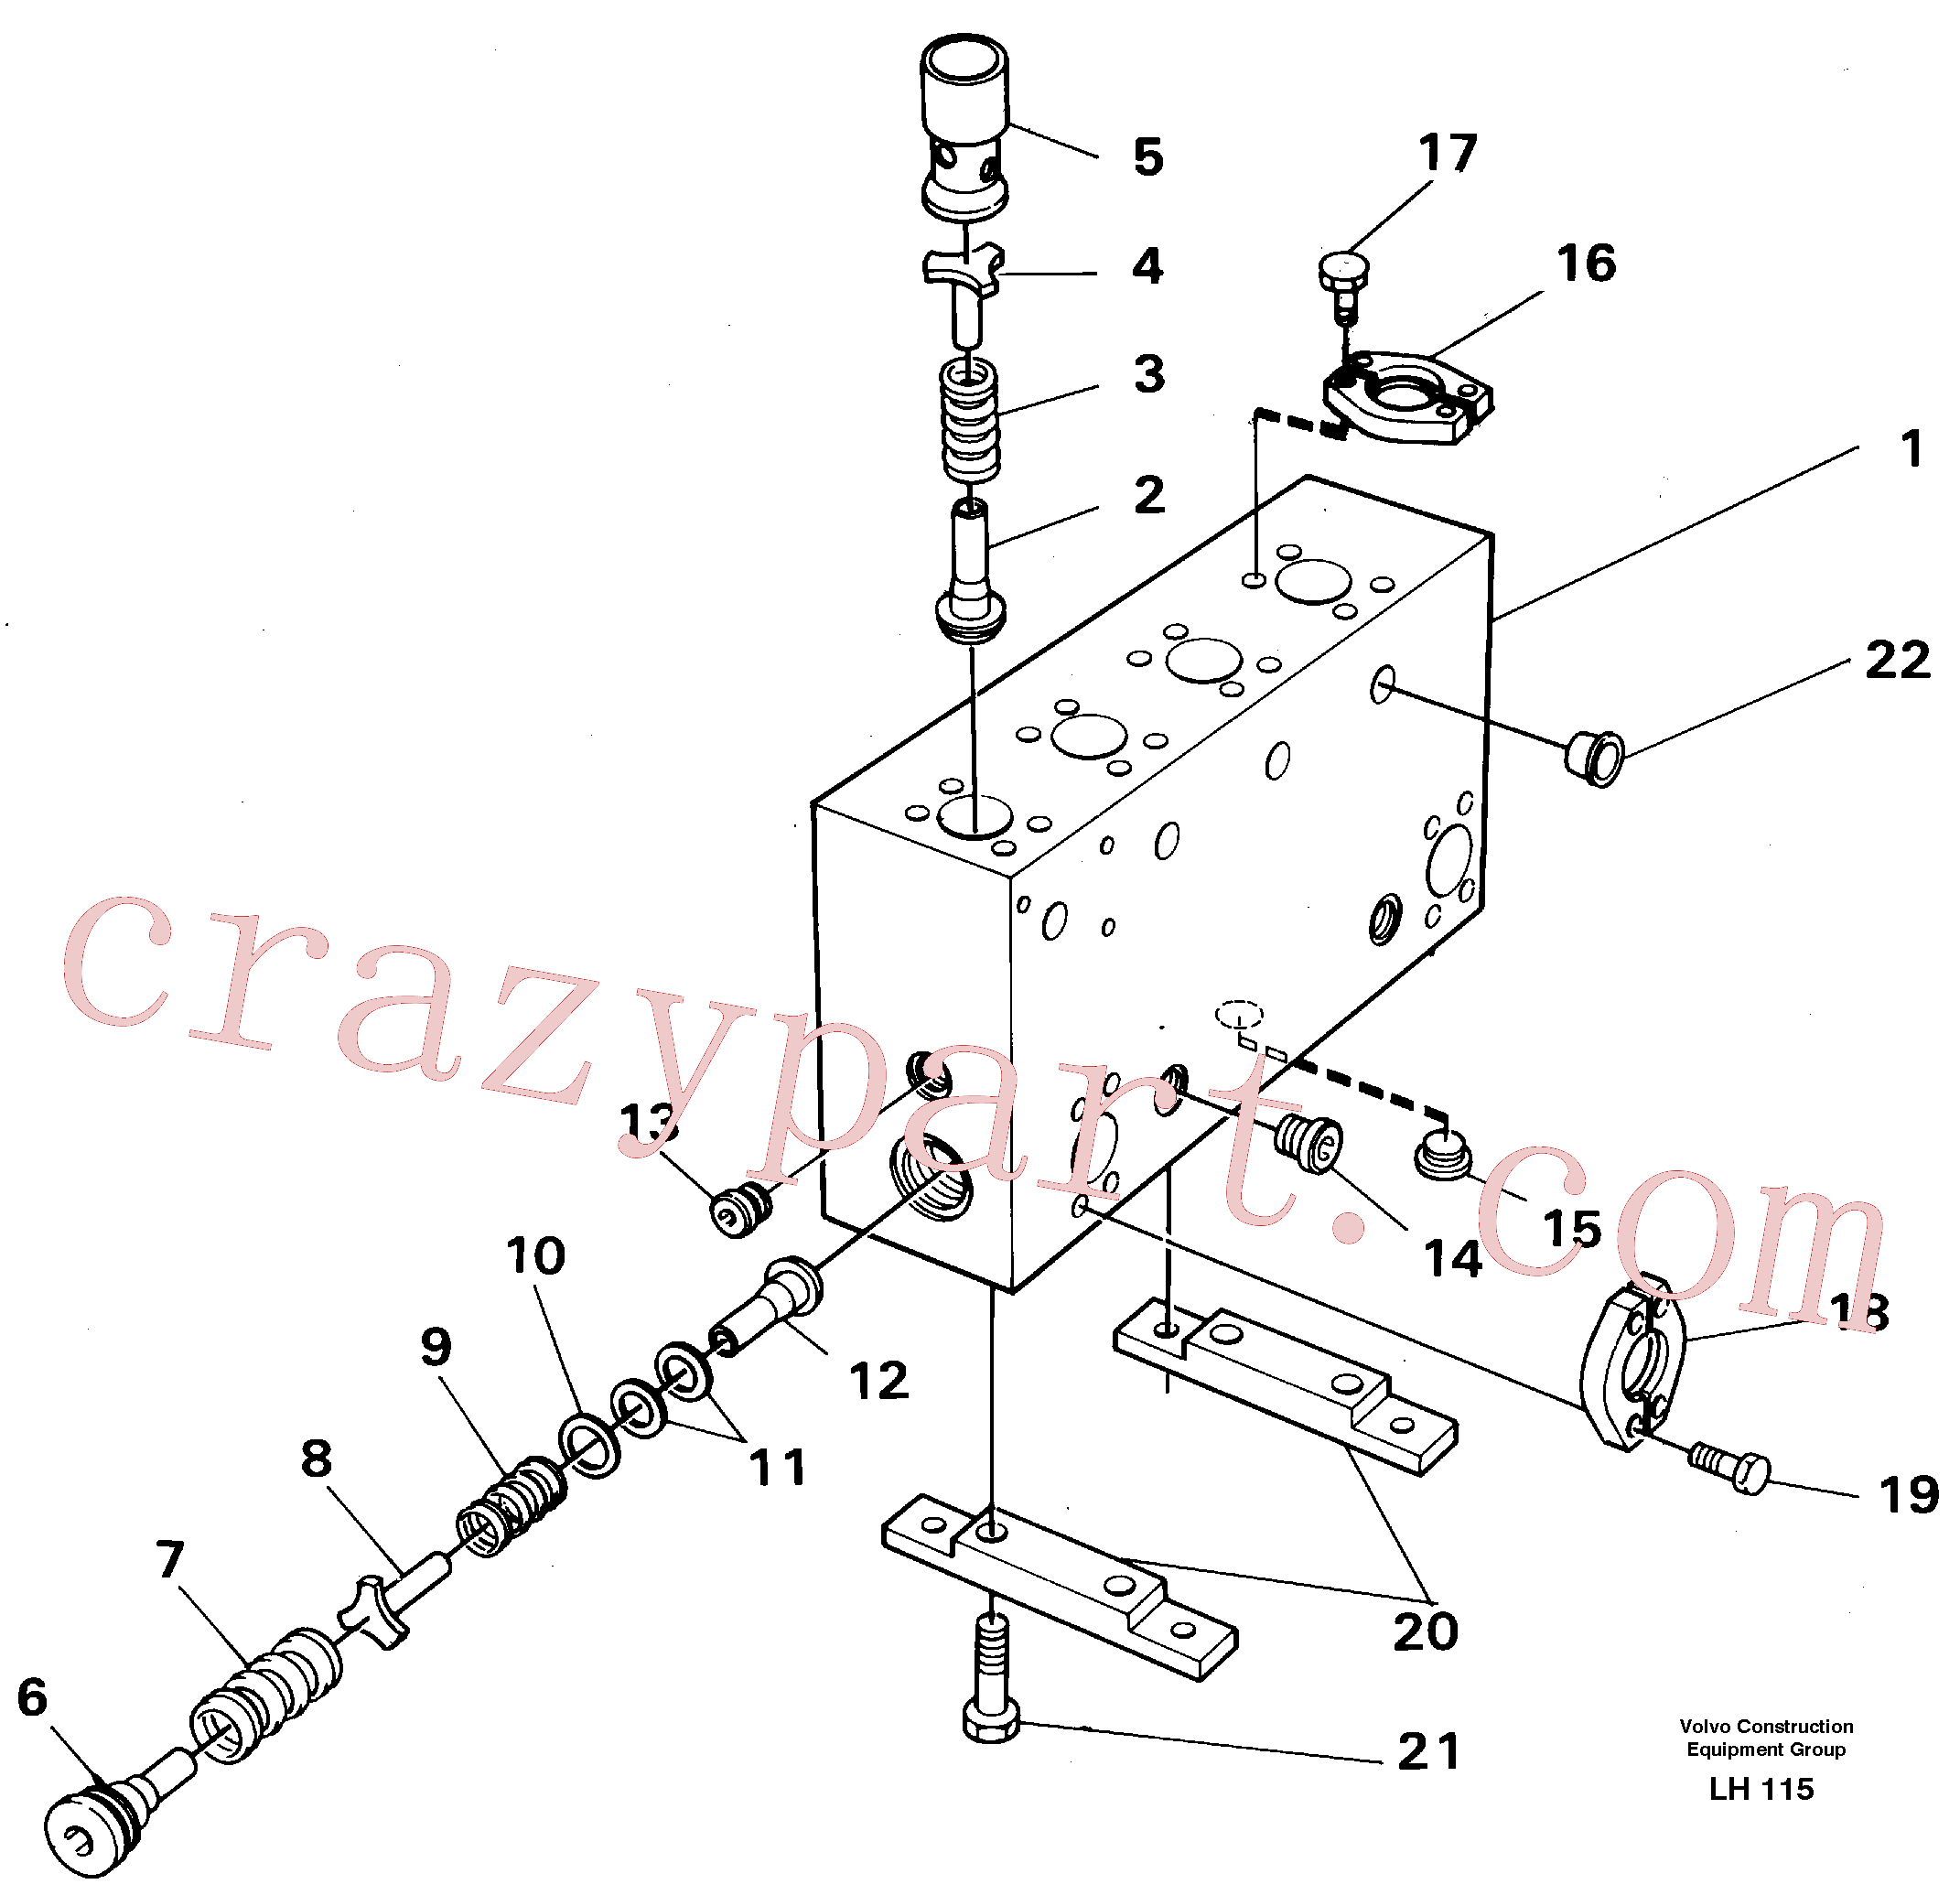 VOE14043301 for Volvo Connection board(LH115 assembly)